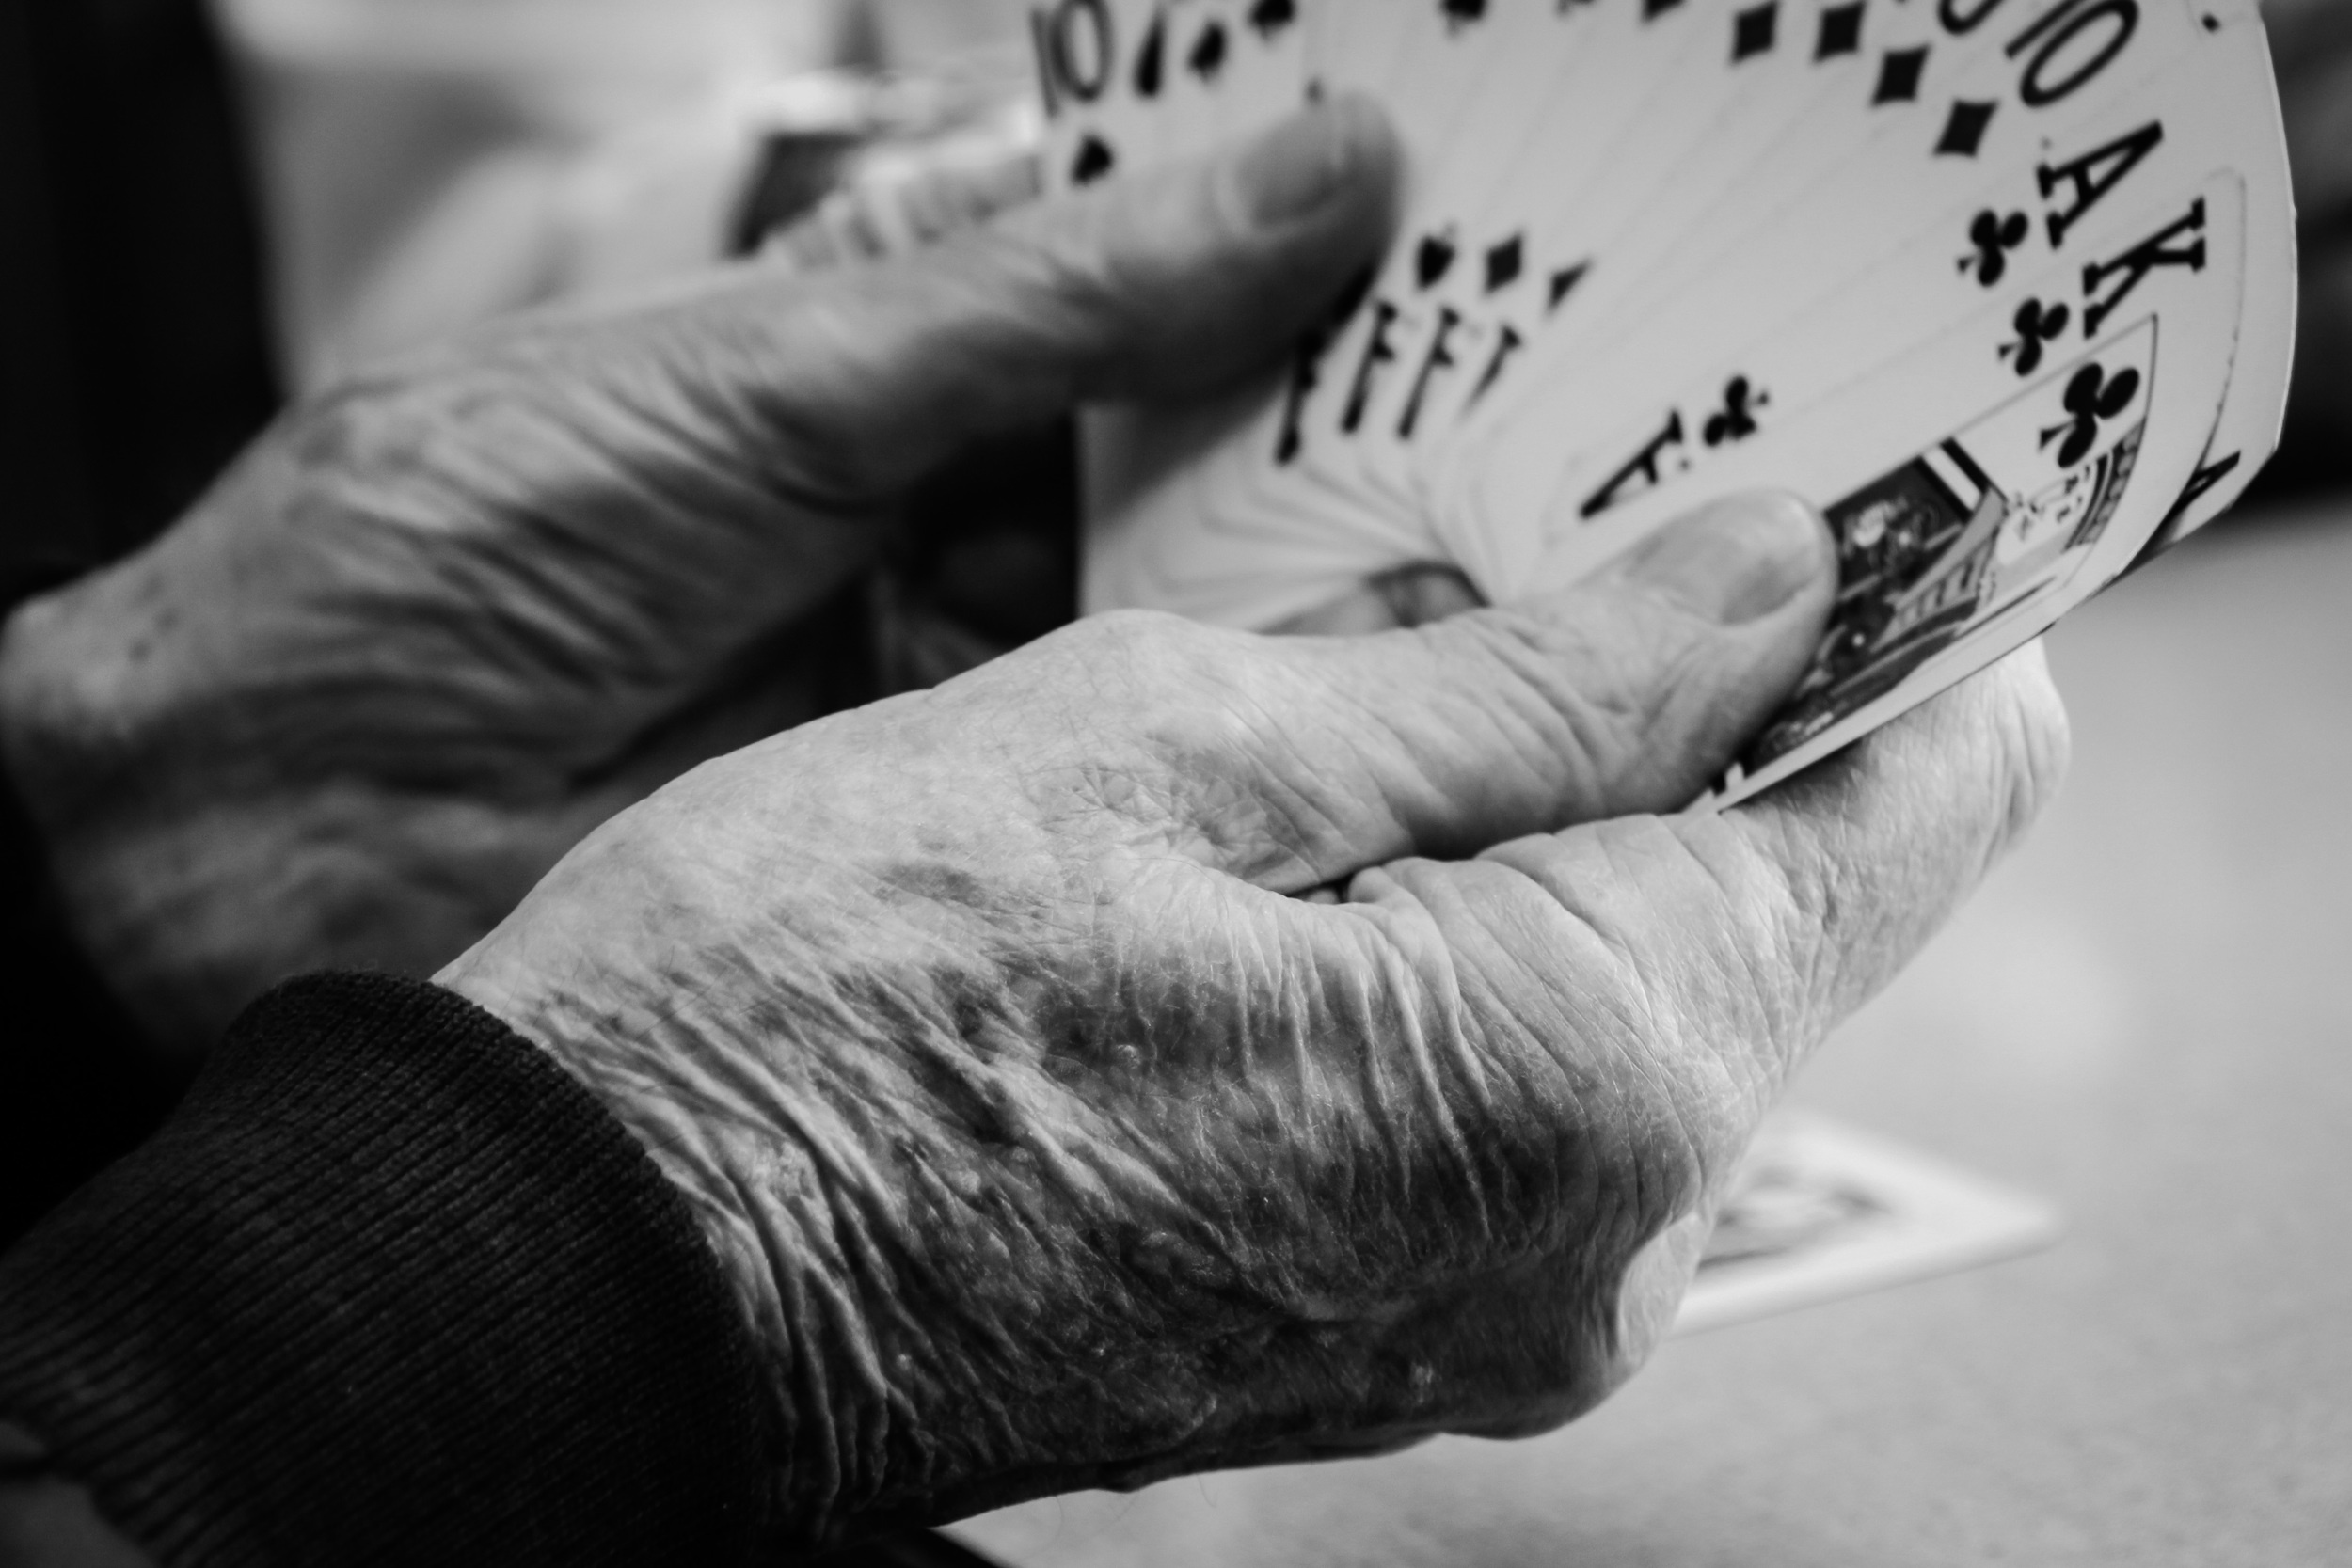 """Ralph Carmichael, 90, cradles his cards in a game of Pinochle at the senior center. Carmichael keeps a USB drive in his pocket that contains his entire """"history"""" as he calls it."""